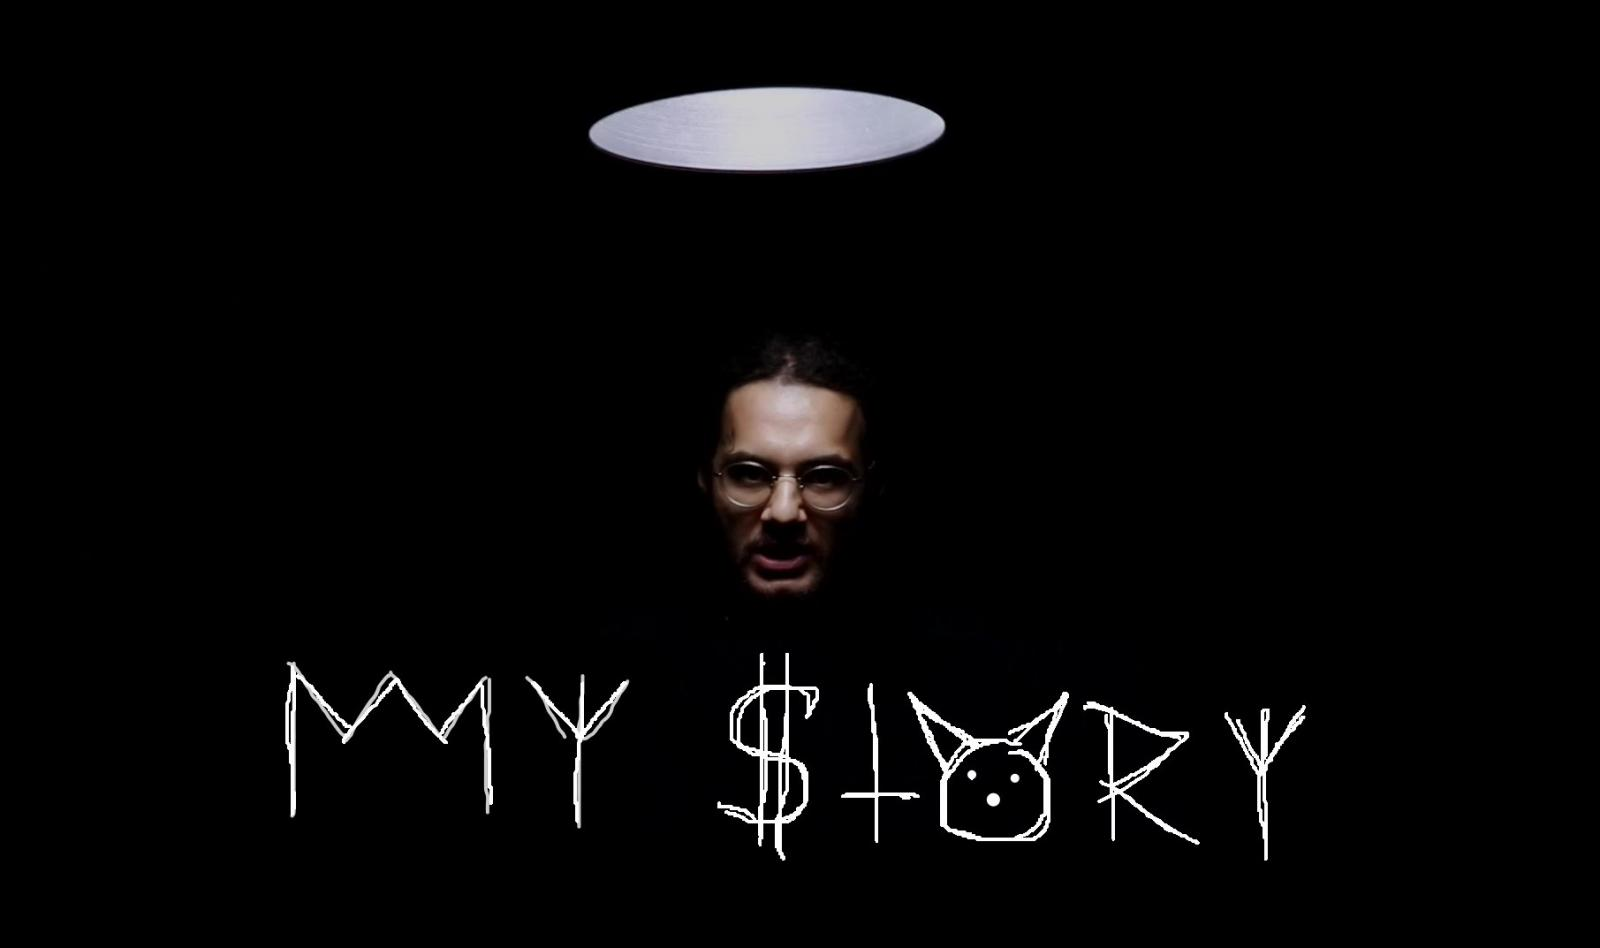 Upcoming: CizZzo - My $tory